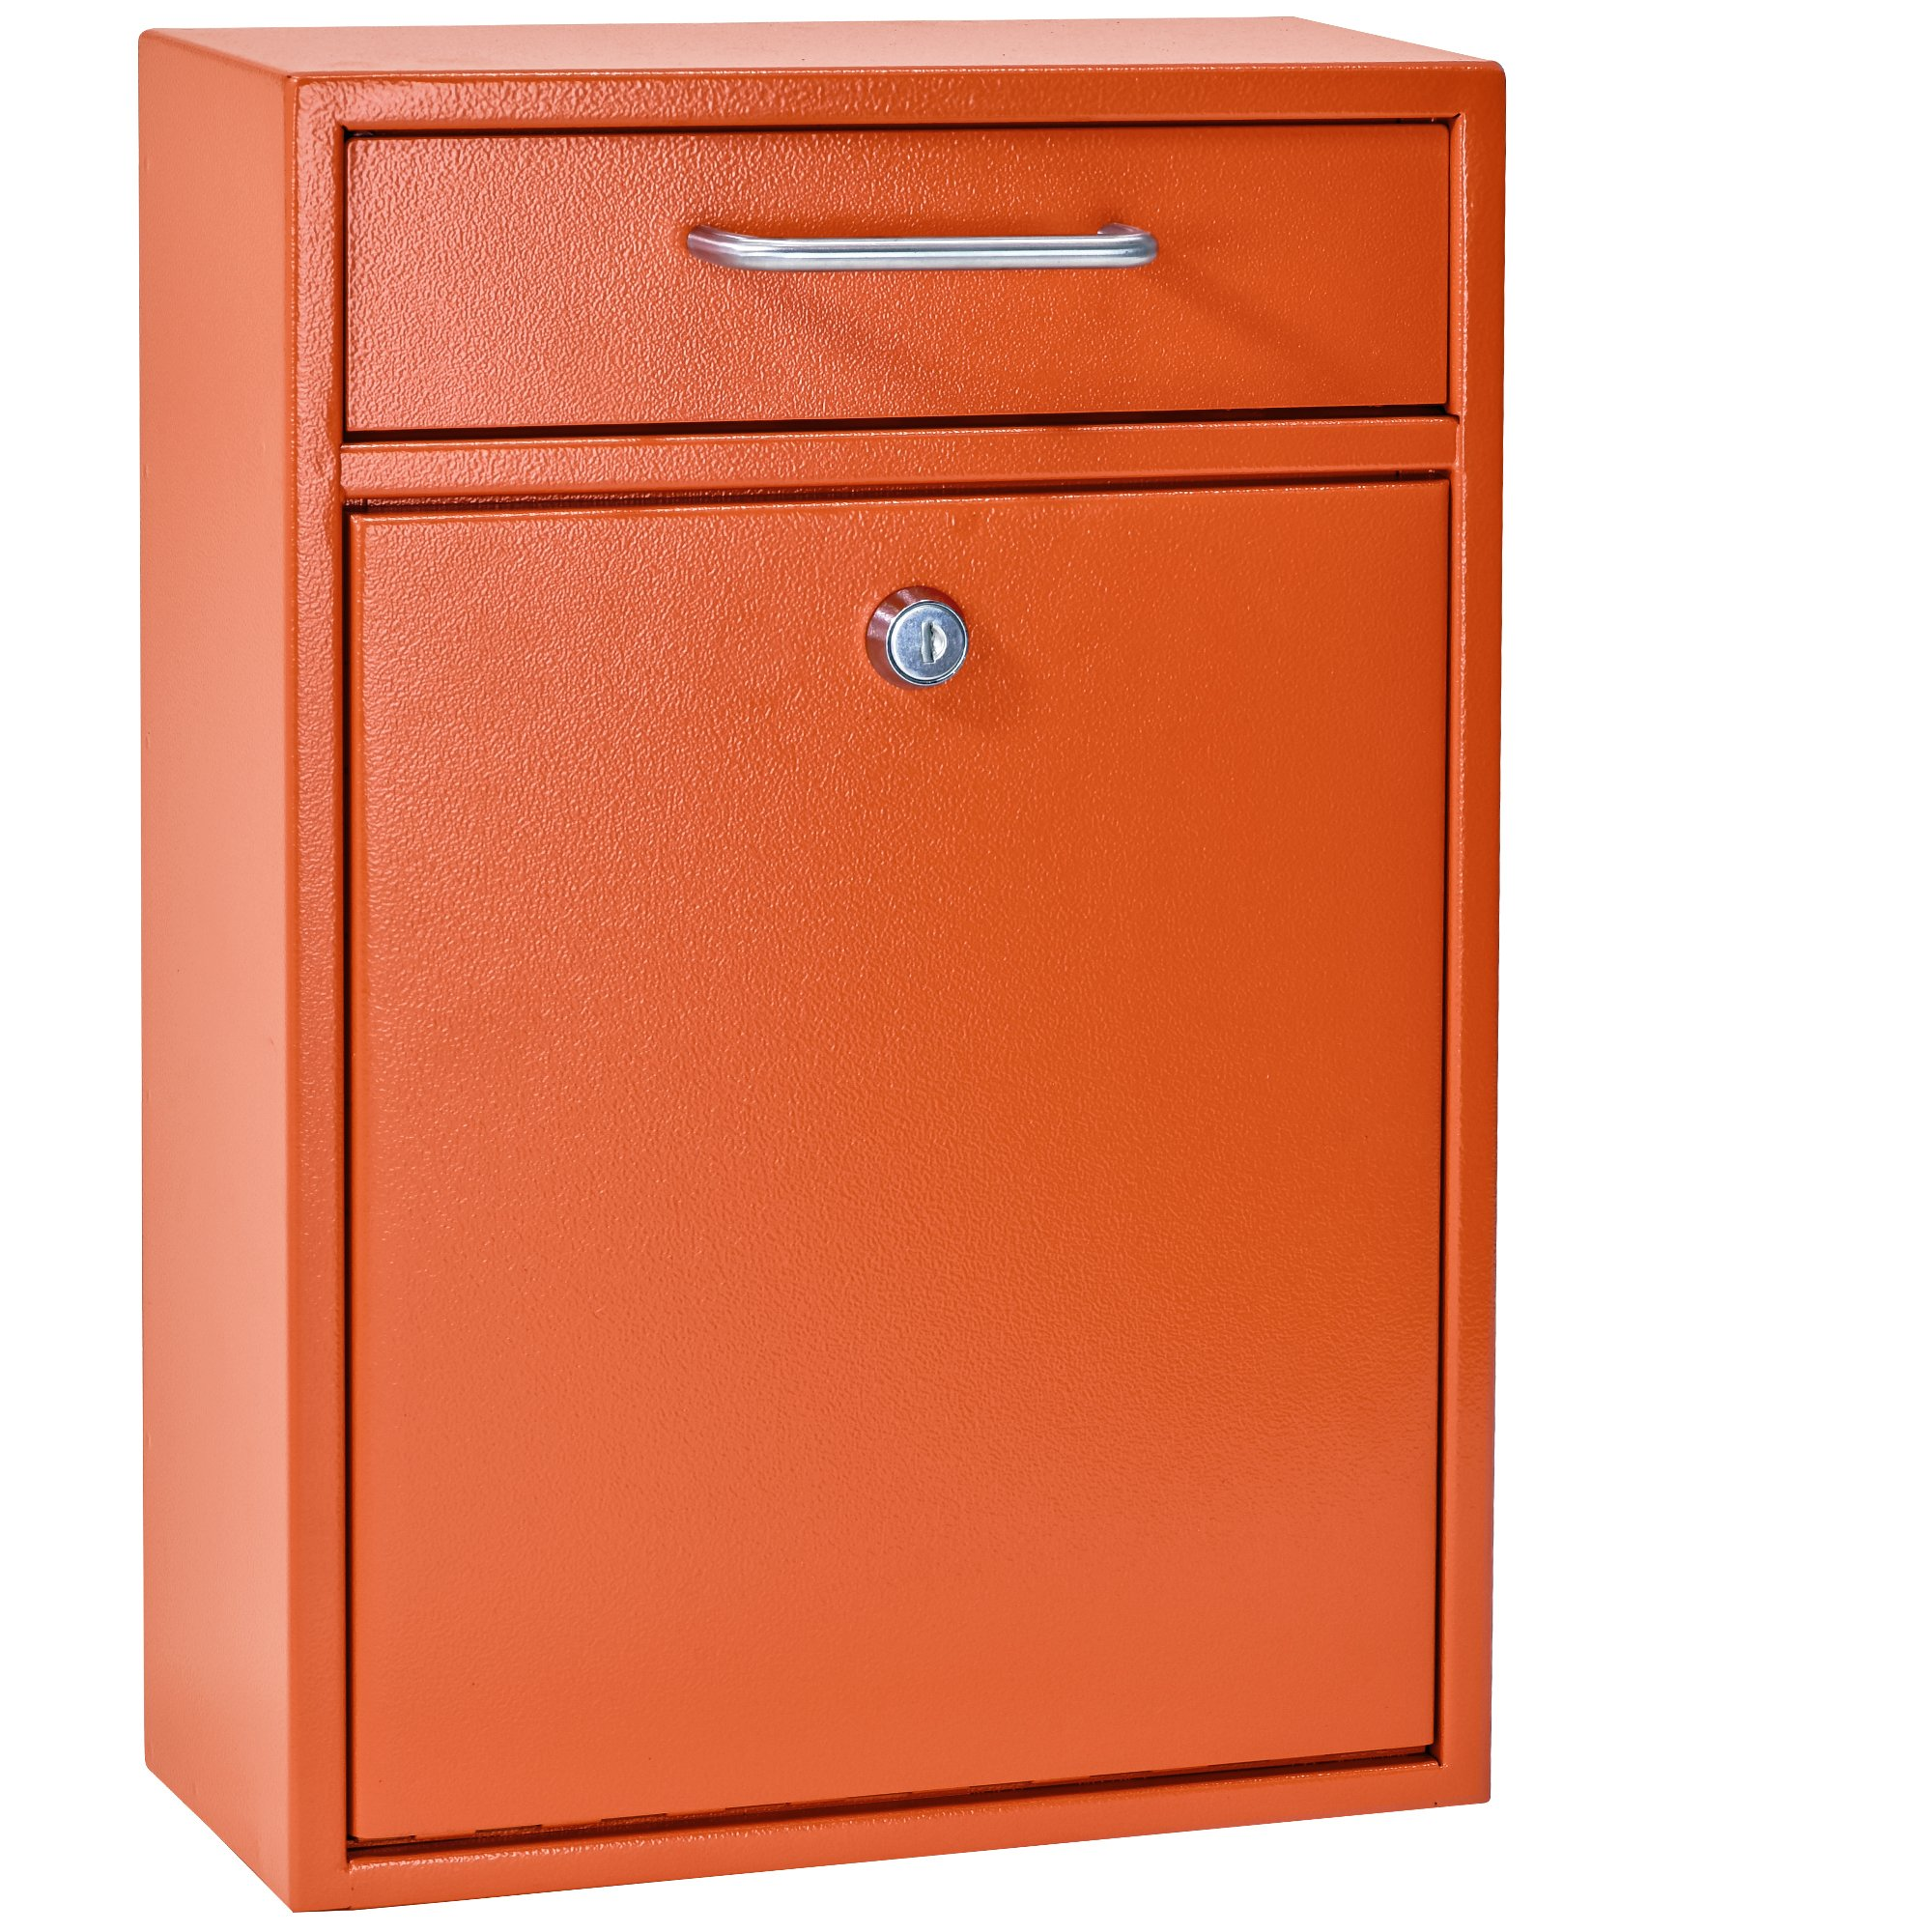 Mail Boss 7425 High Security Steel Locking Wall Mounted Mailbox - Office Drop Box - Comment Box - Letter Box - Deposit Box, Orange